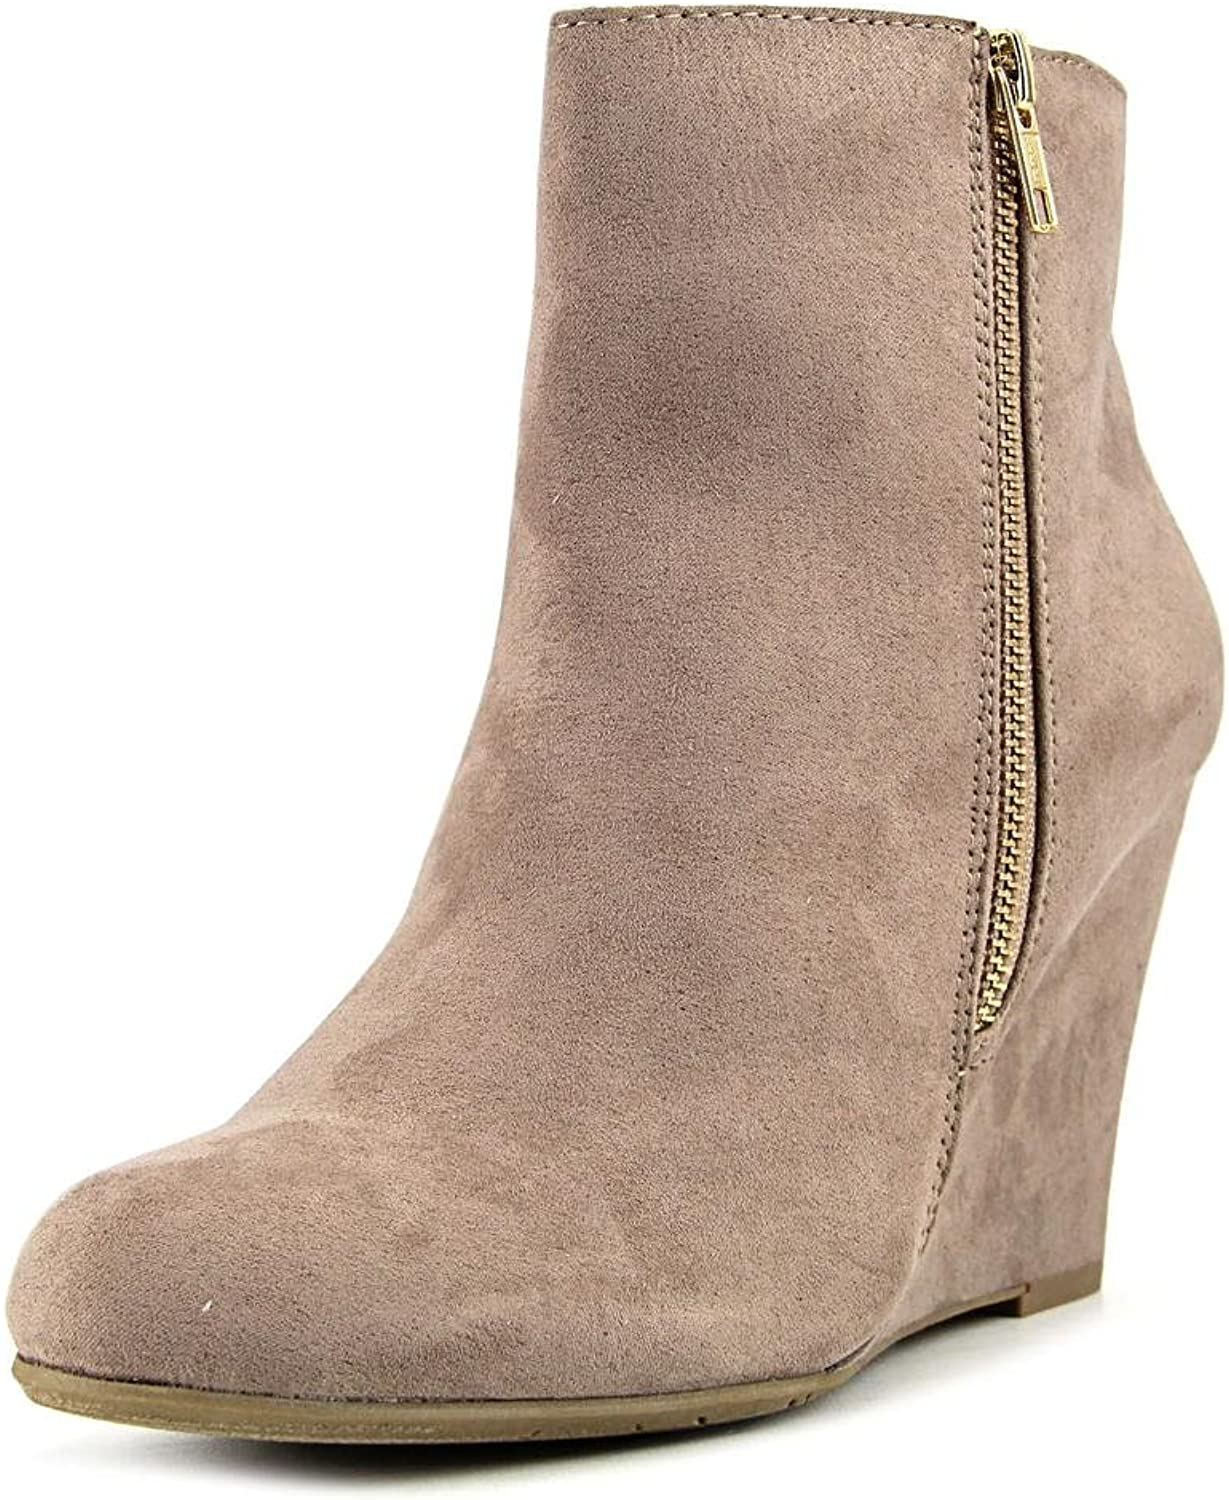 Report Womens Russi Ankle Bootie